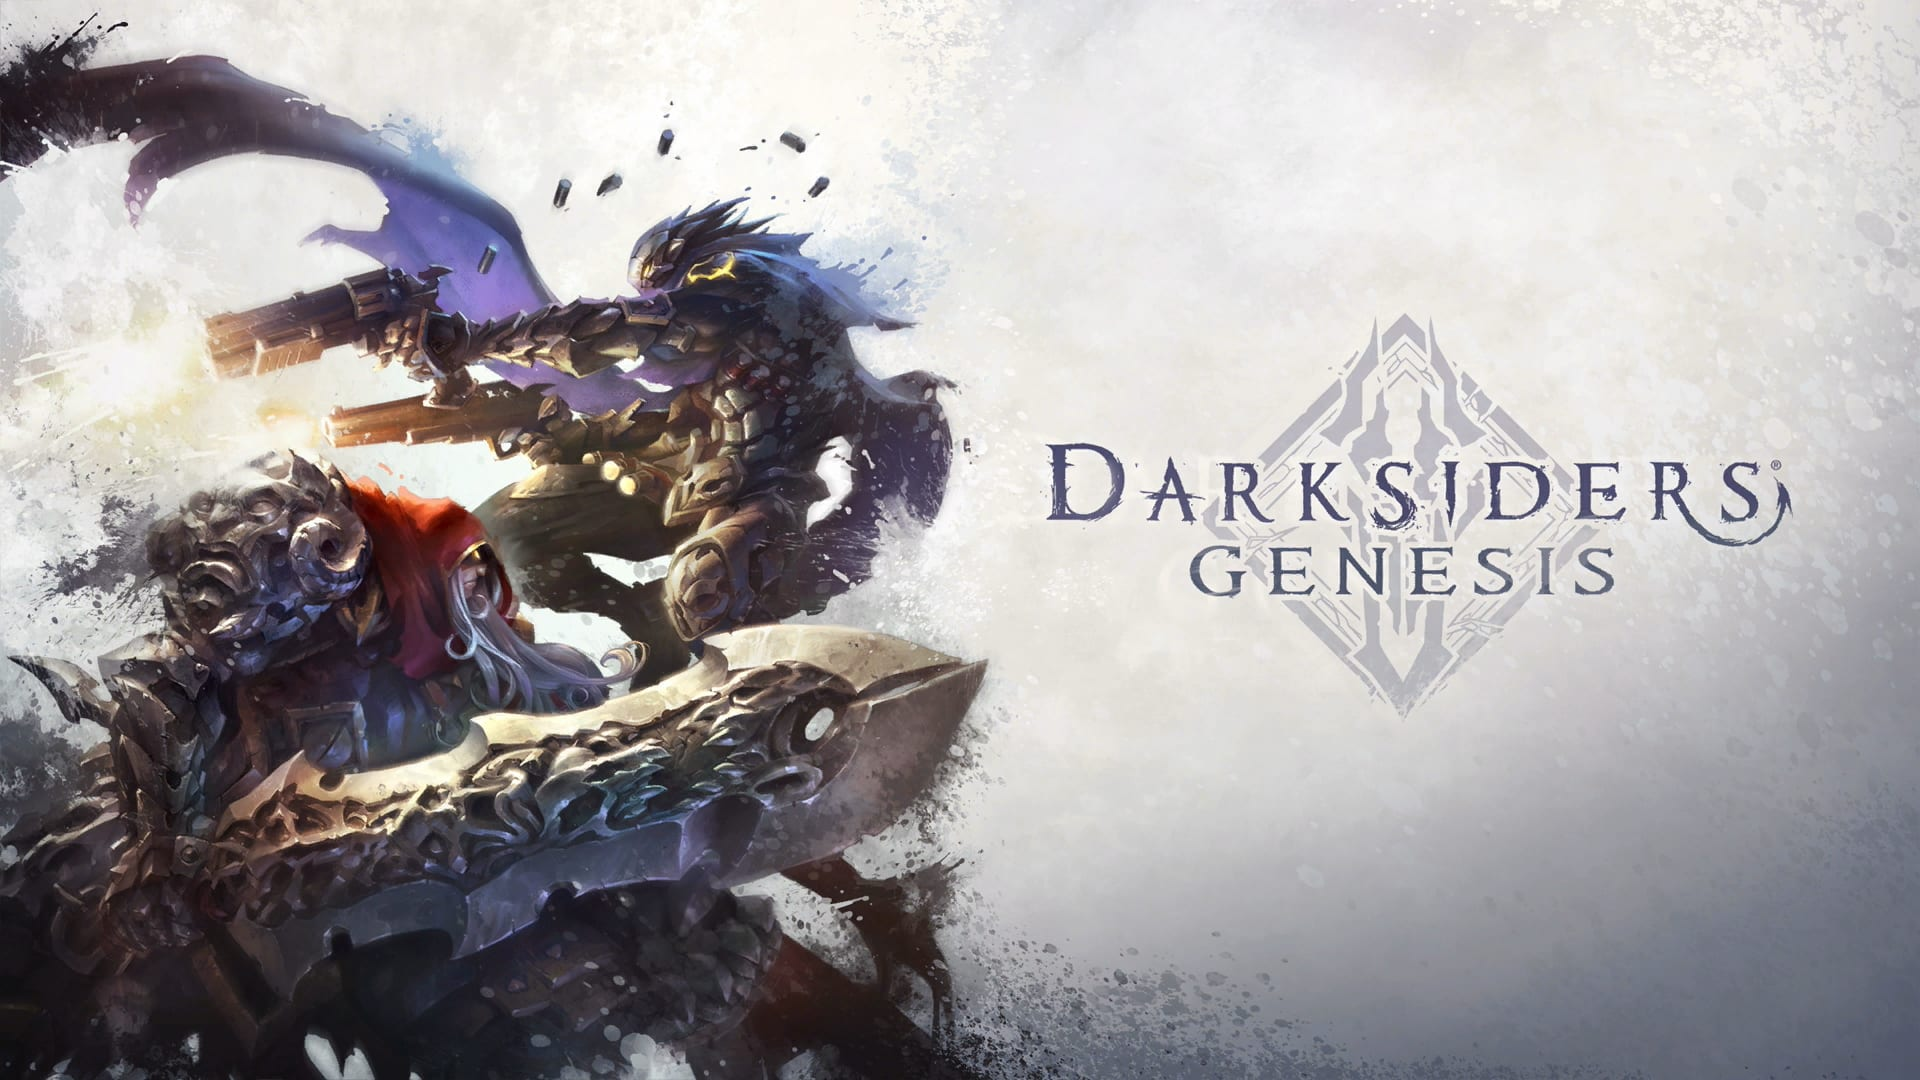 Darksiders Genesis Is Available Now In Australia & New Zealand Across All Consoles